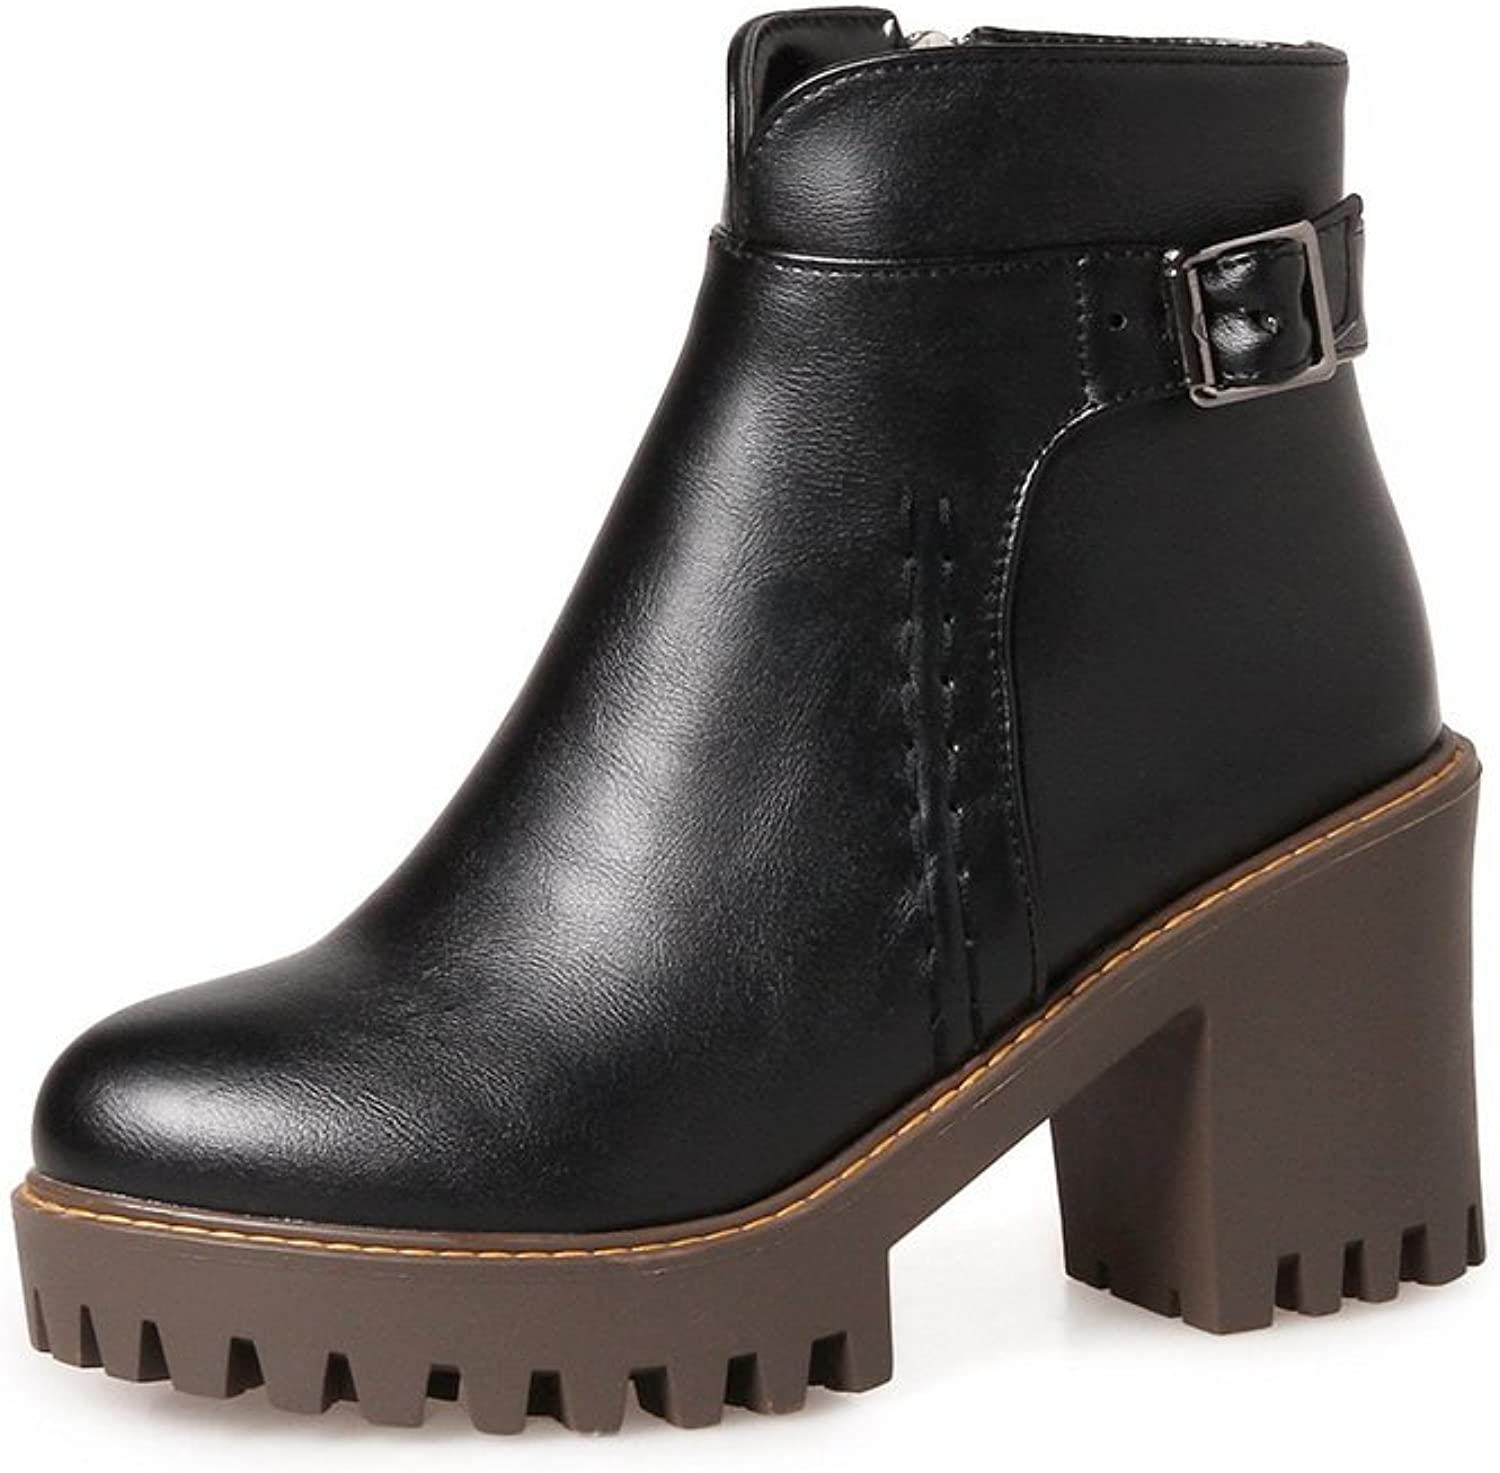 1TO9 Womens Pumps-shoes Low-Top Zip Kitten-Heel Rubber Smooth Leather Bootie Urethane Pumps shoes MNS02481